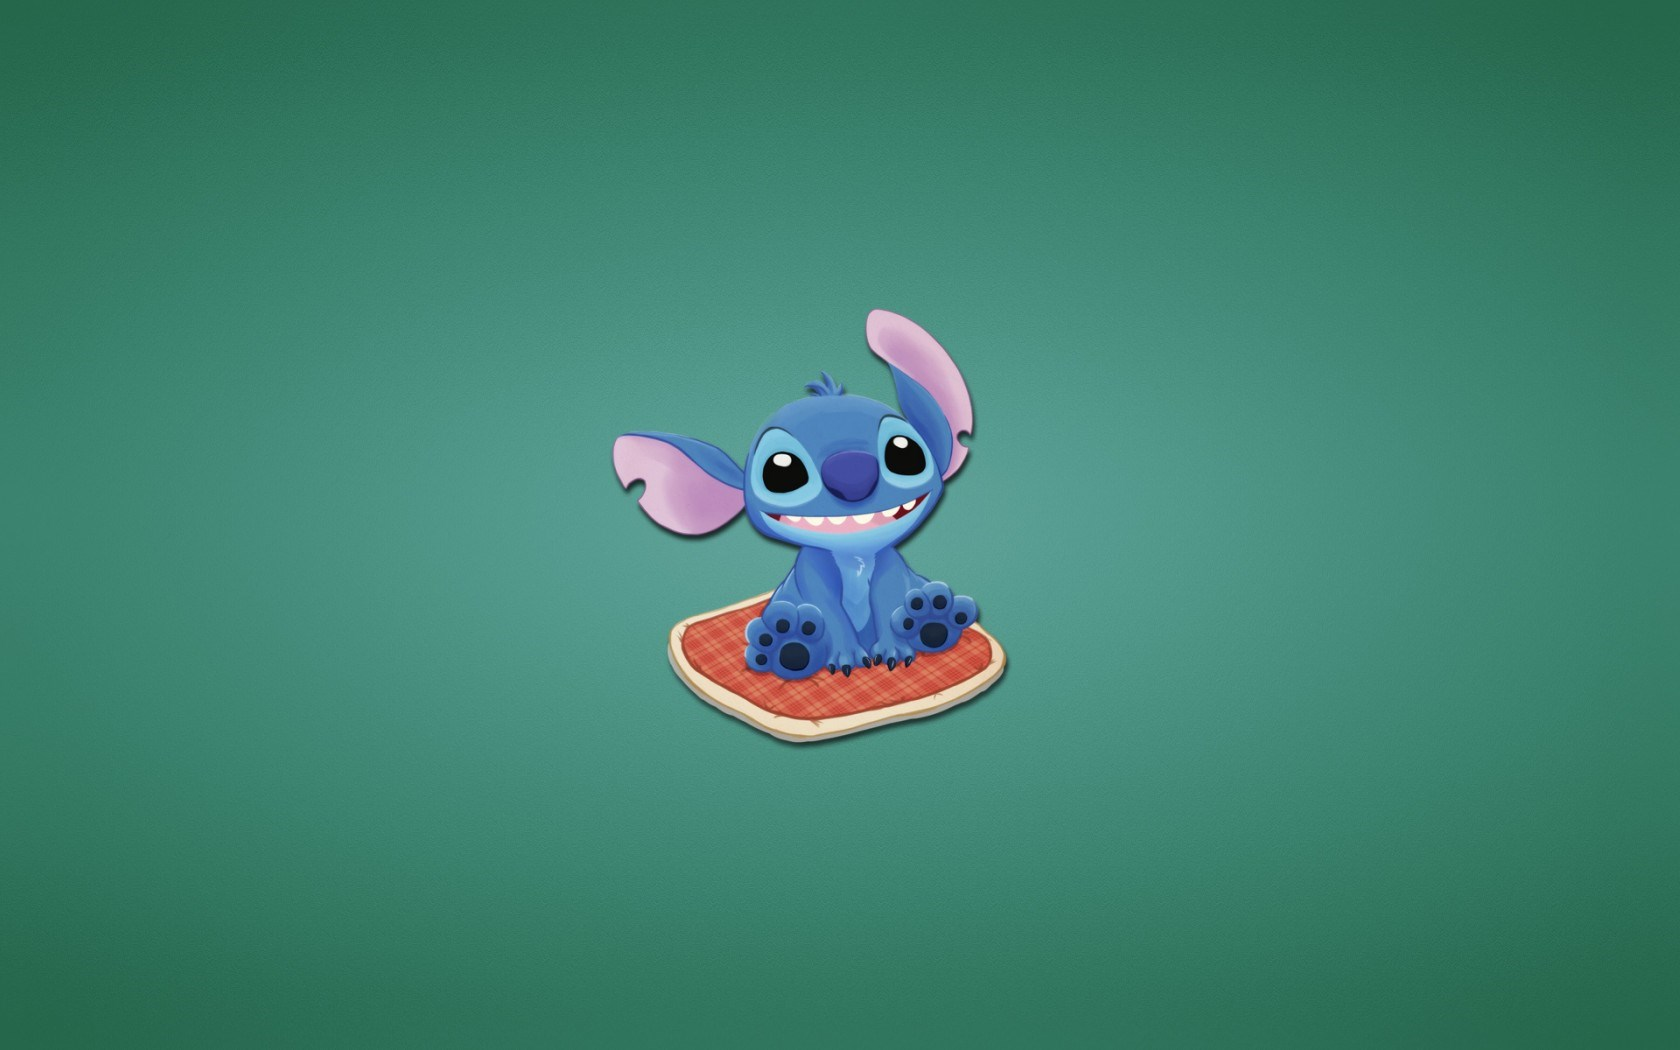 Lilo and Stitch Wallpaper HD for IPhone and Android   iPhone2Lovely 1680x1050